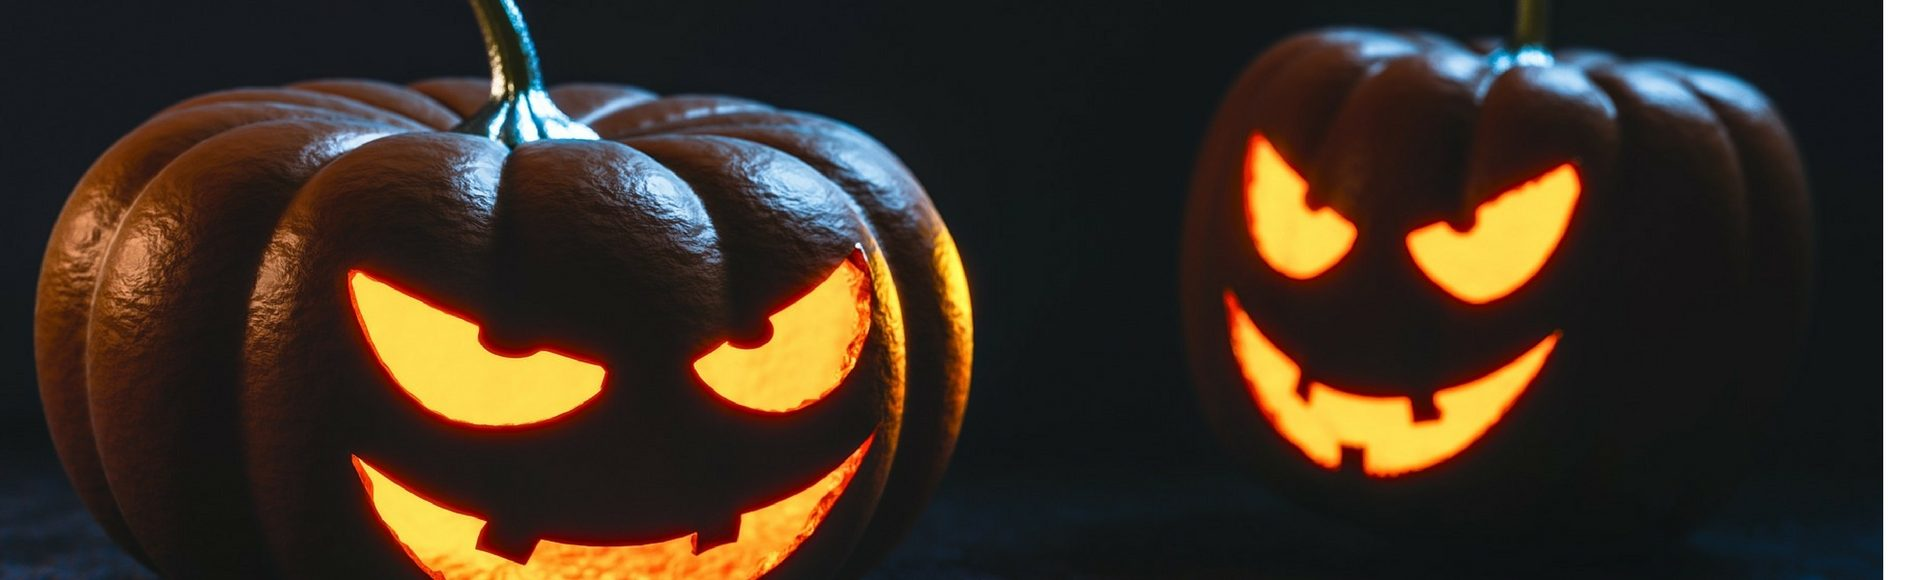 Halloween is spooktacular at the Library